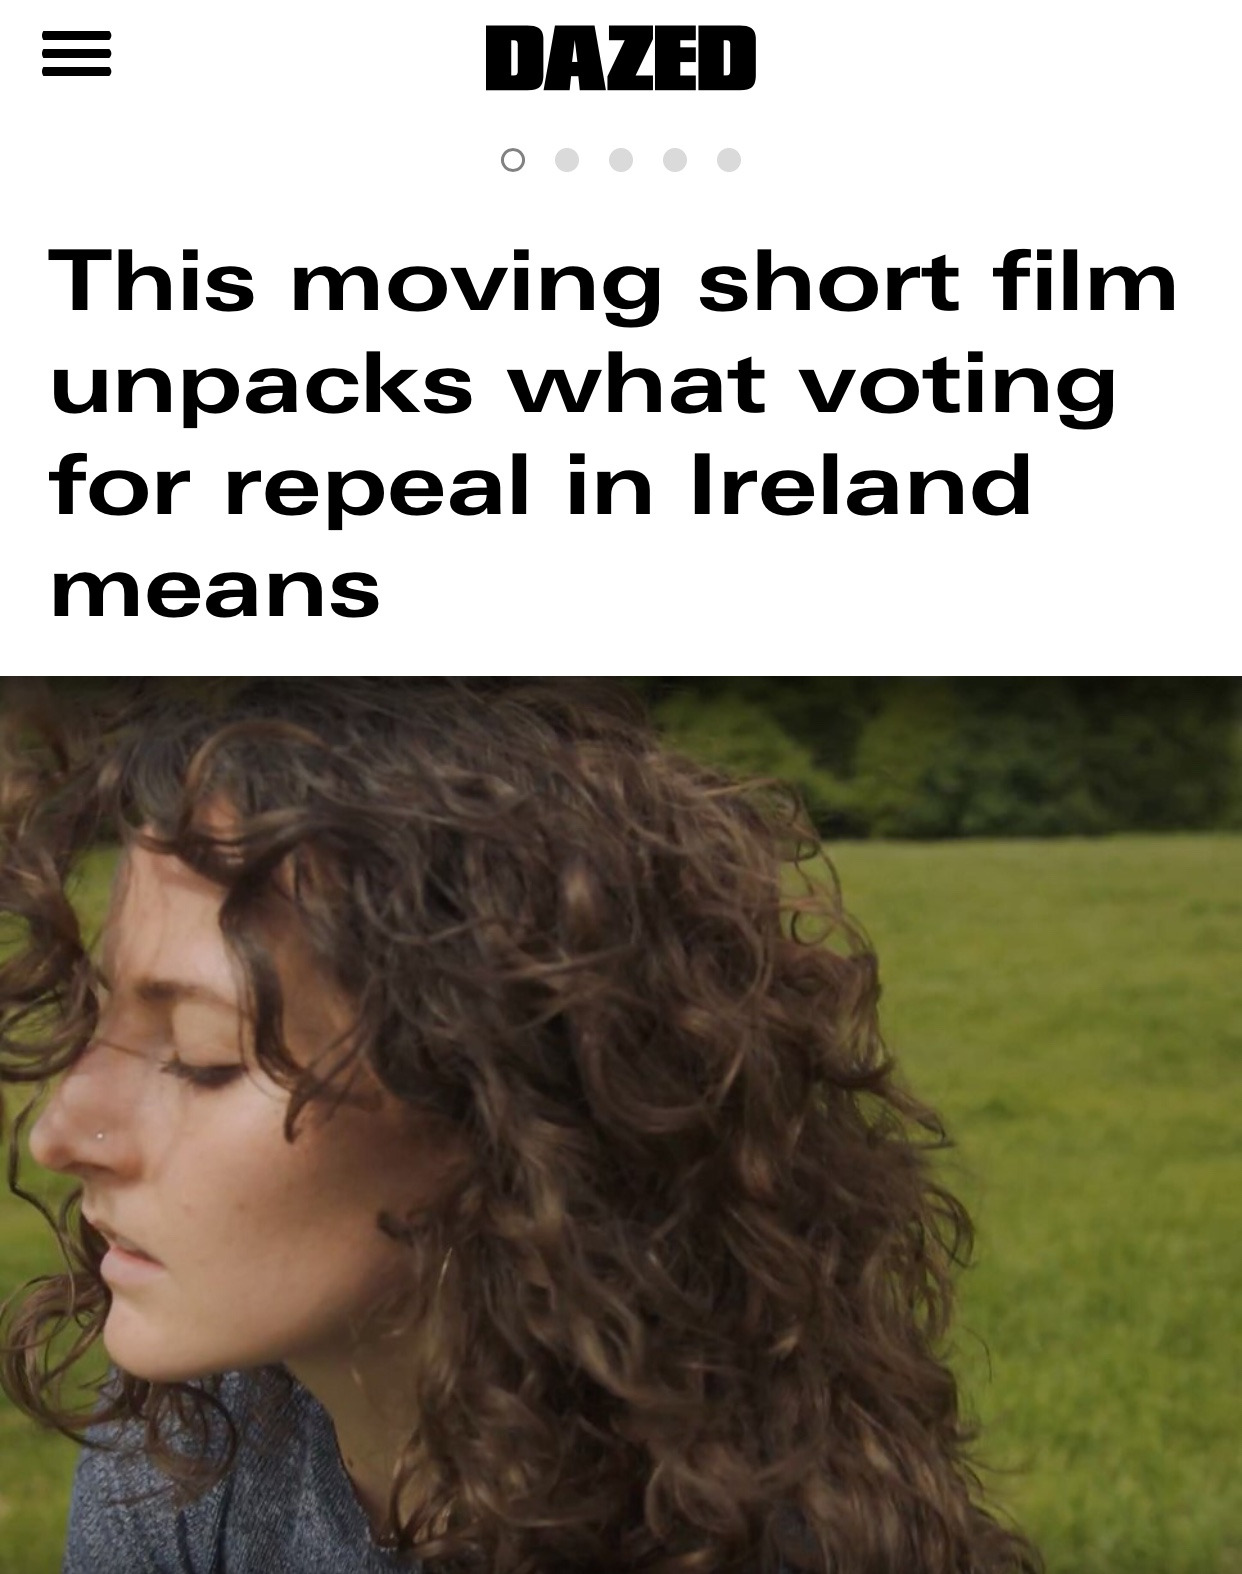 DAZED DIGITAL   Featured as 'the undecided voter' in a short film directed and choreographed by Rachel Ní Bhraonáin, in response the Irish referendum to repeal the 8th amendment. Read more about it via the link attached.     http://www.dazeddigital.com/politics/article/40104/1/moving-short-film-unpacks-voting-repeal-abortion-ireland-undecided-vote-means